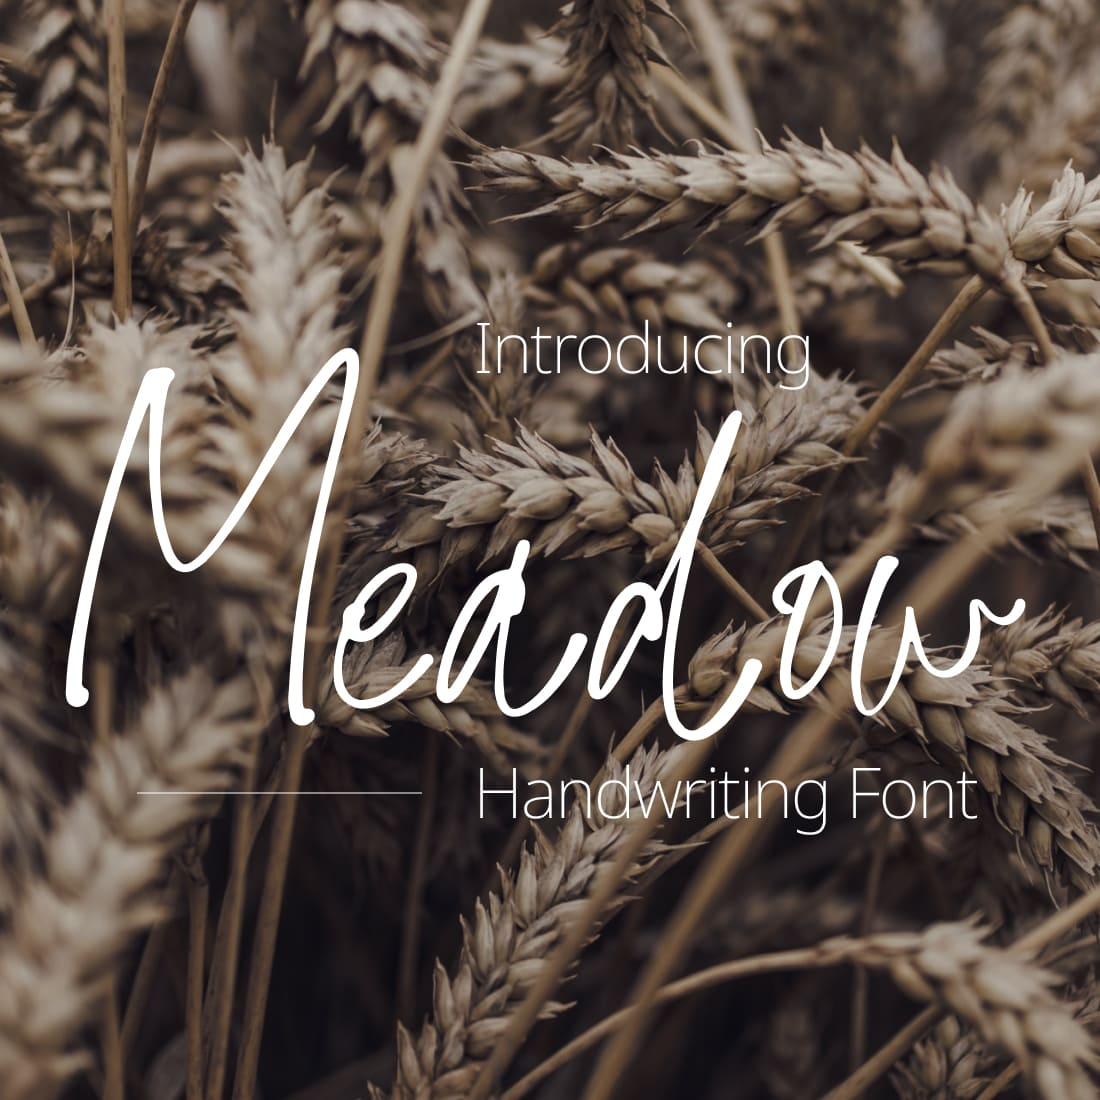 Meadow Handwriting Font Cover Collage Image by MasterBundles.